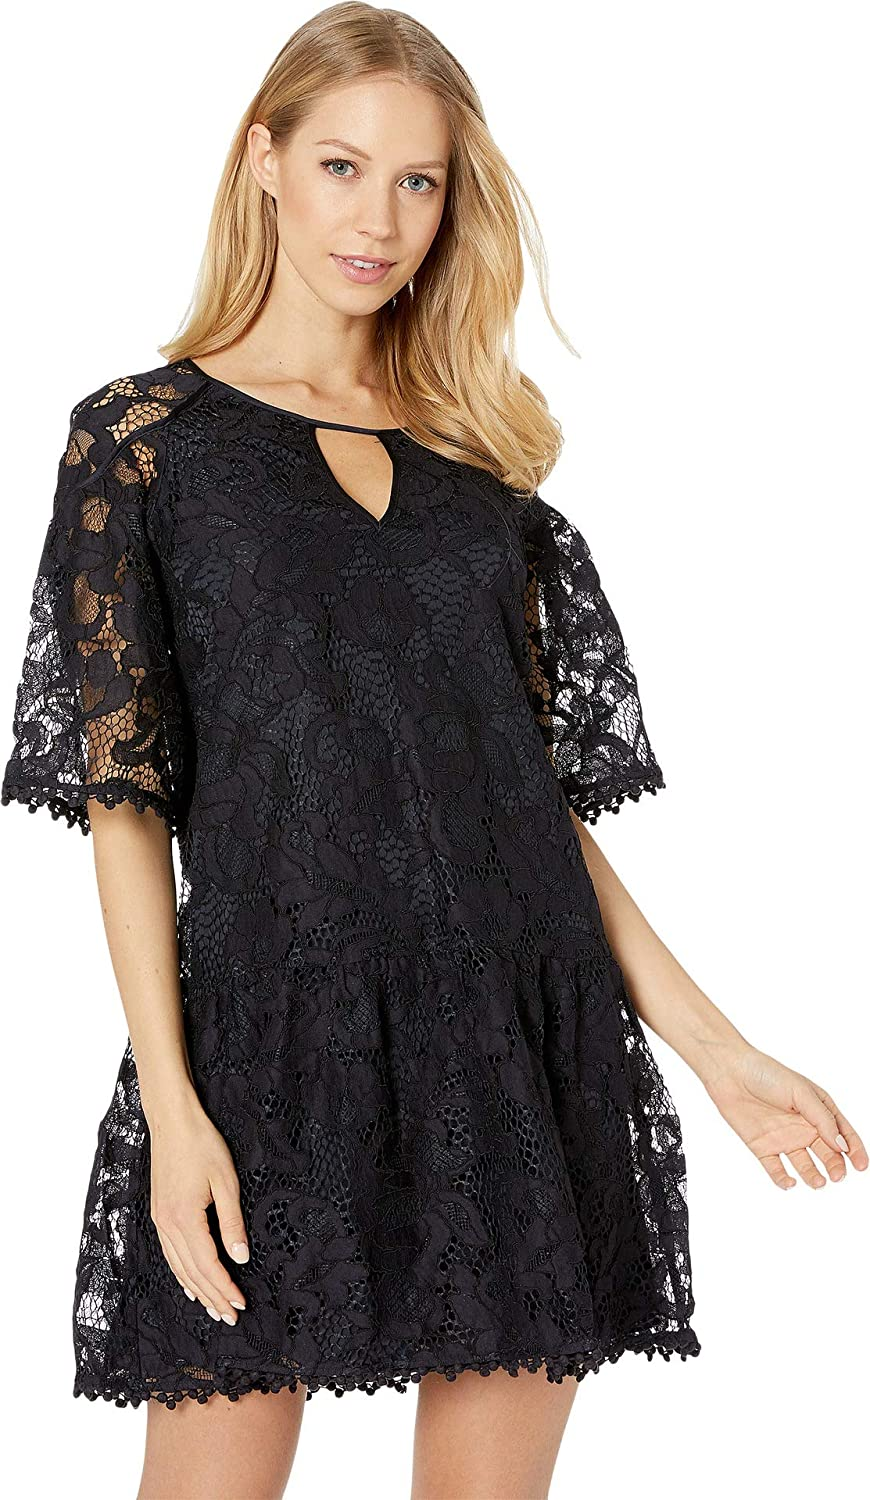 Juicy Couture Black Label Womens Hibiscus Lace Flounce Sleeves Party Dress